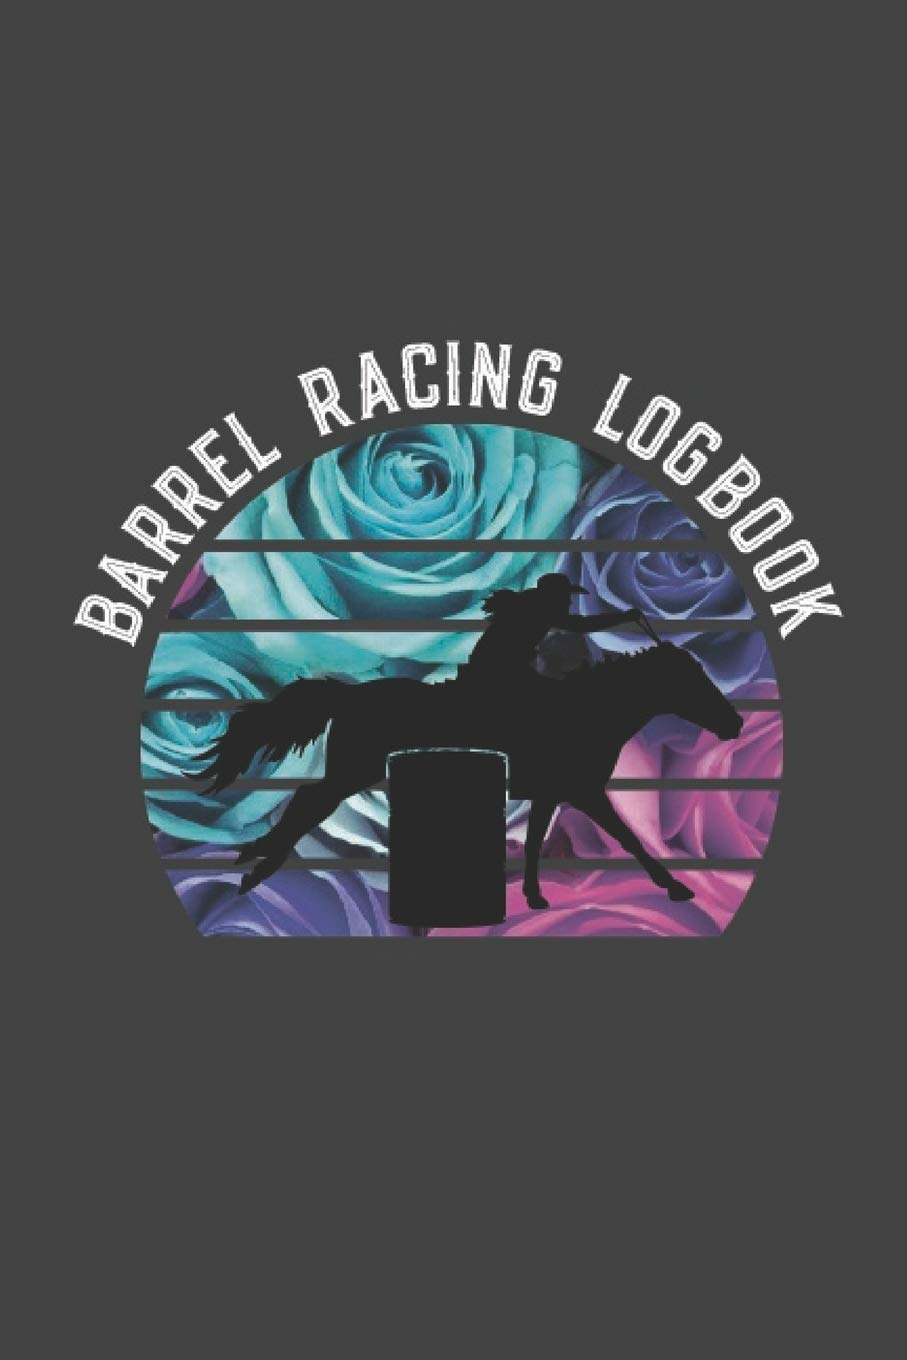 Image OfBarrel Racing Logbook: Barrel Racer Tracker - Horse Lovers Log Book - Pole Bending Diary For Rodeo Cowgirls